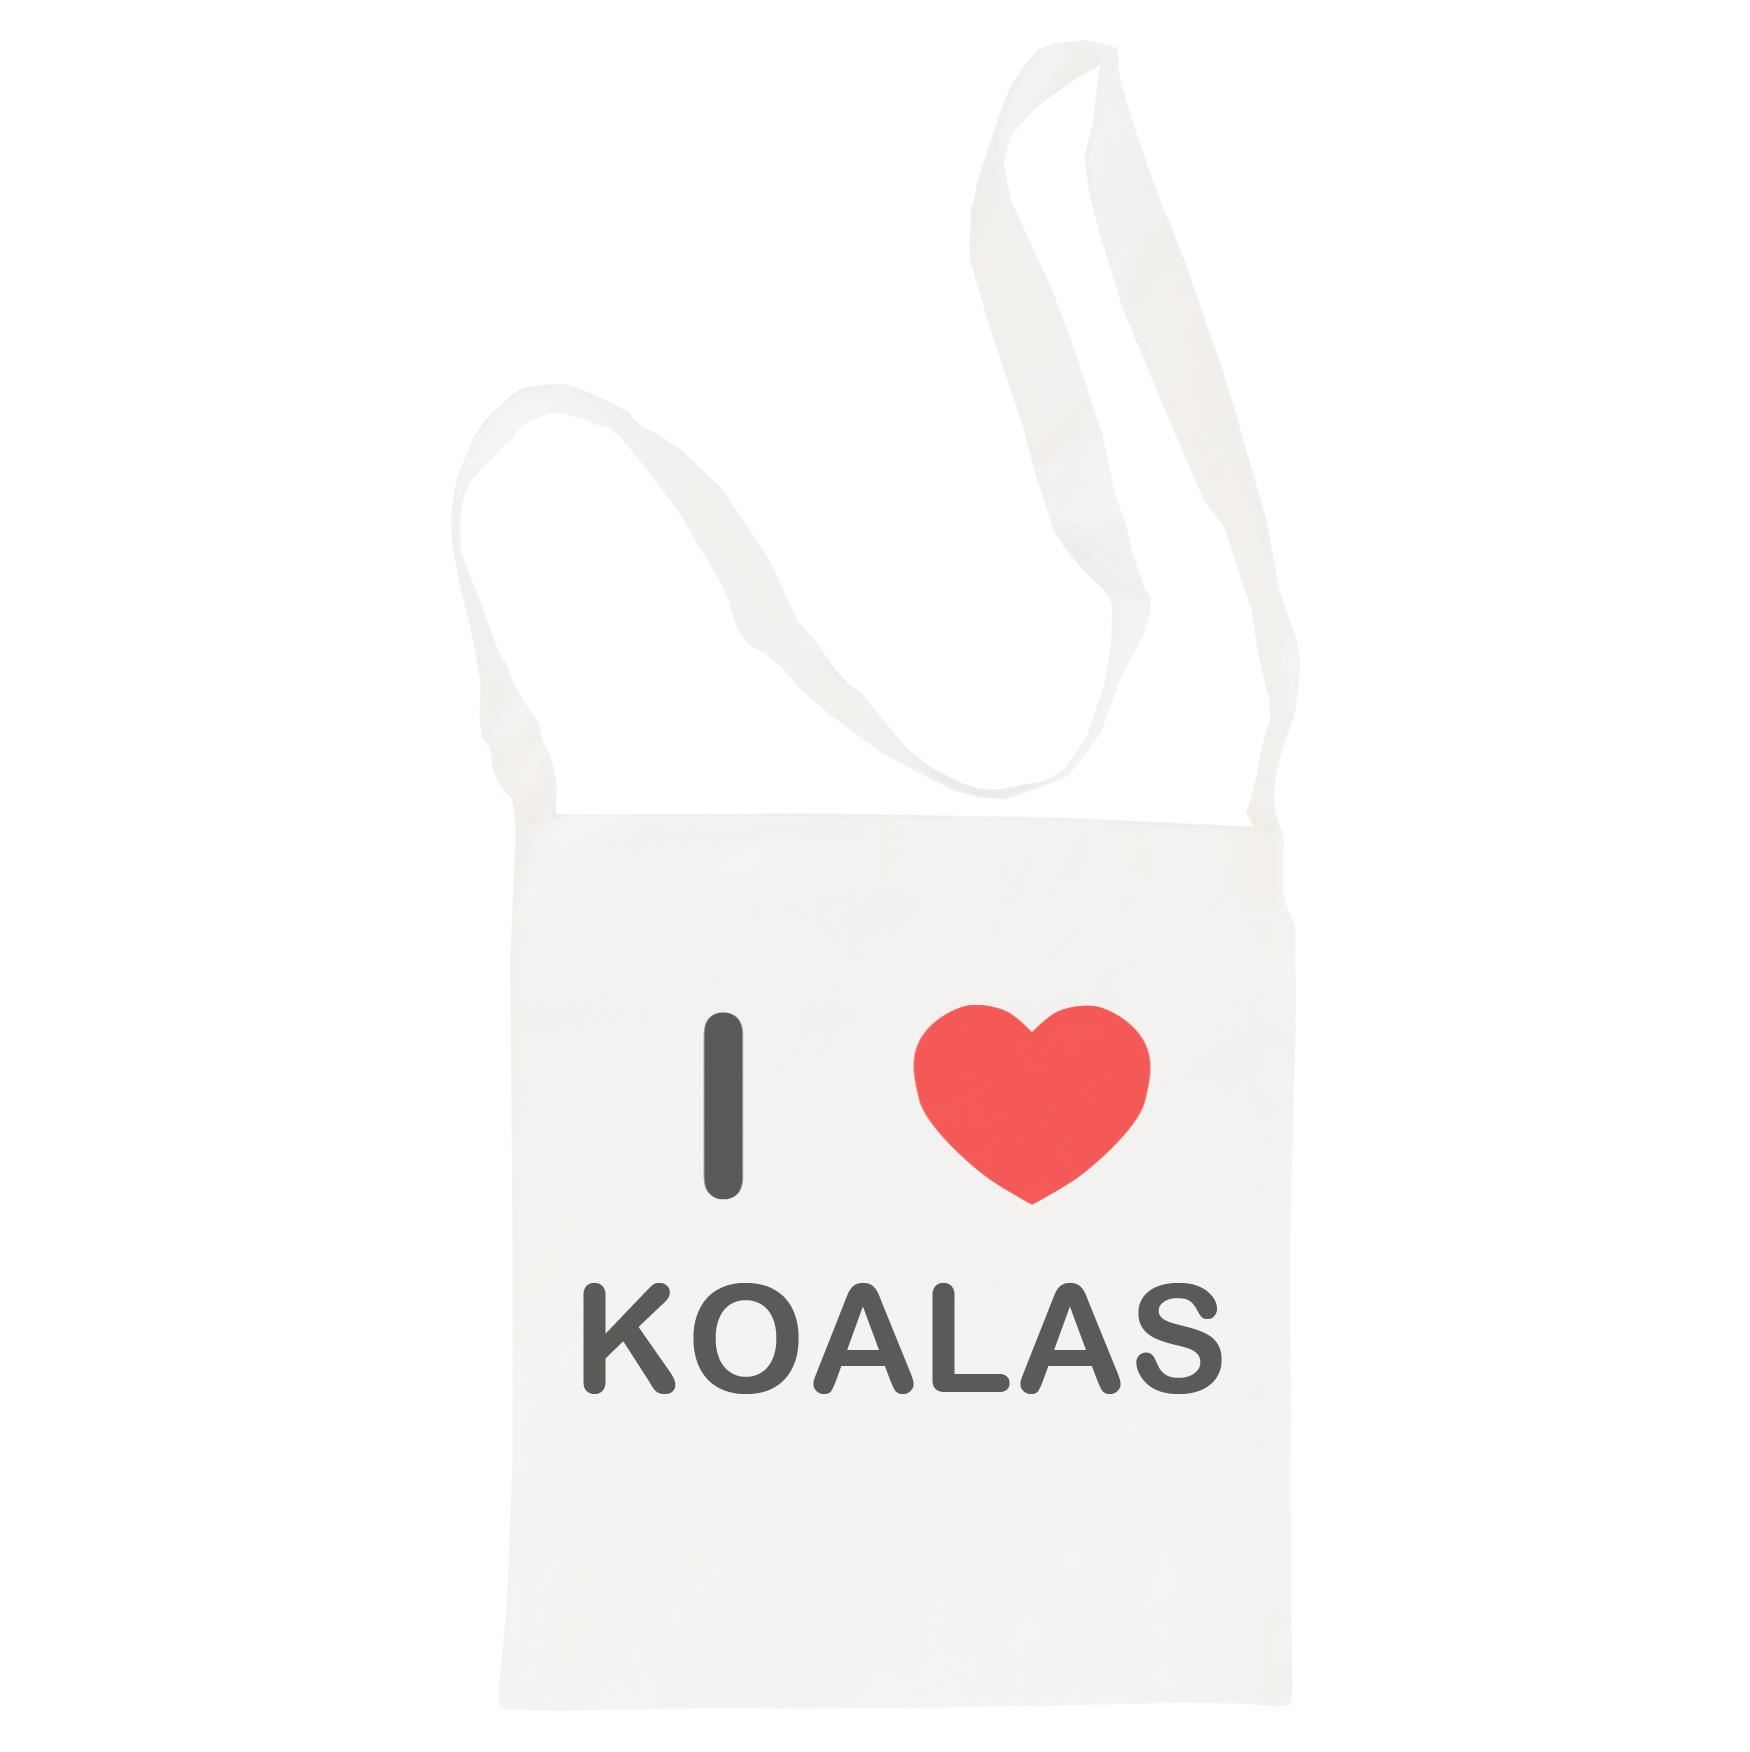 I Love Koalas - Cotton Bag | Size choice Tote, Shopper or Sling